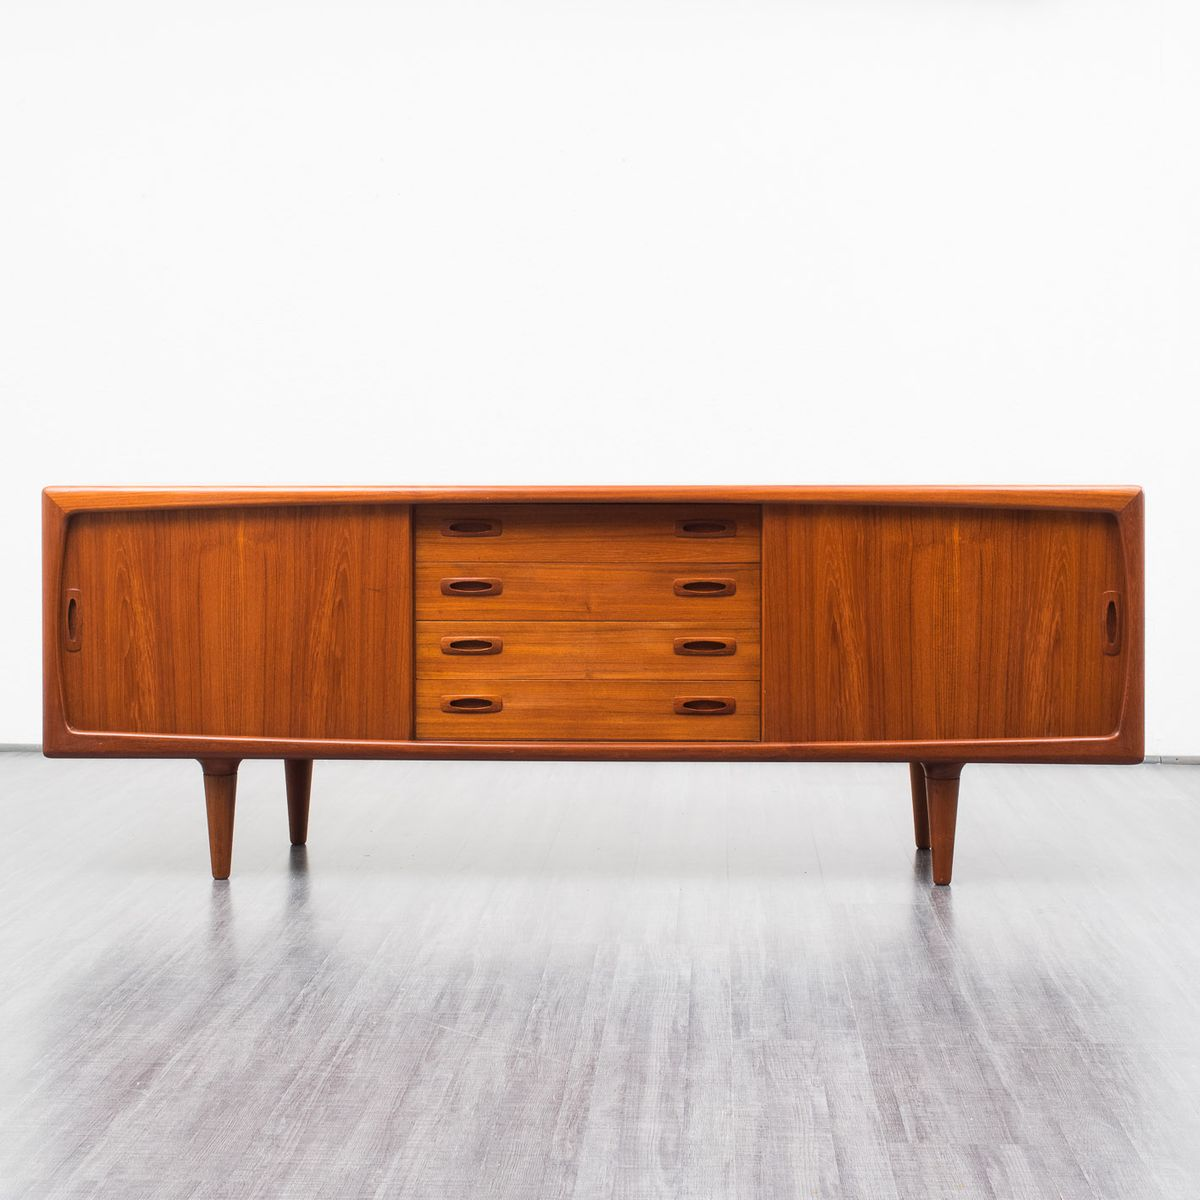 Teak sideboard from h p hansen 1960s for sale at pamono for Sideboard 220 cm